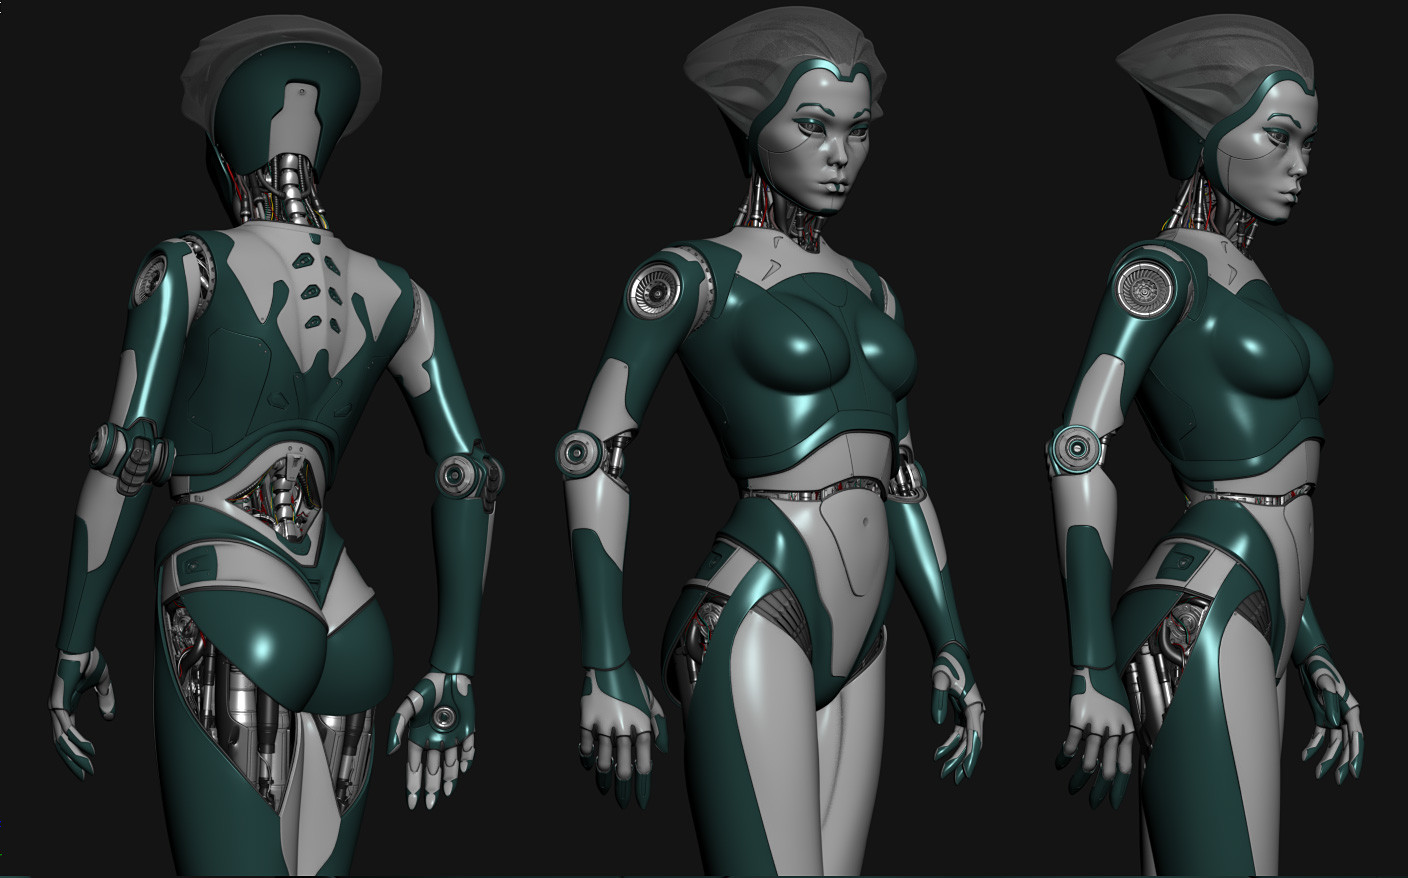 My concept of the Robotskin